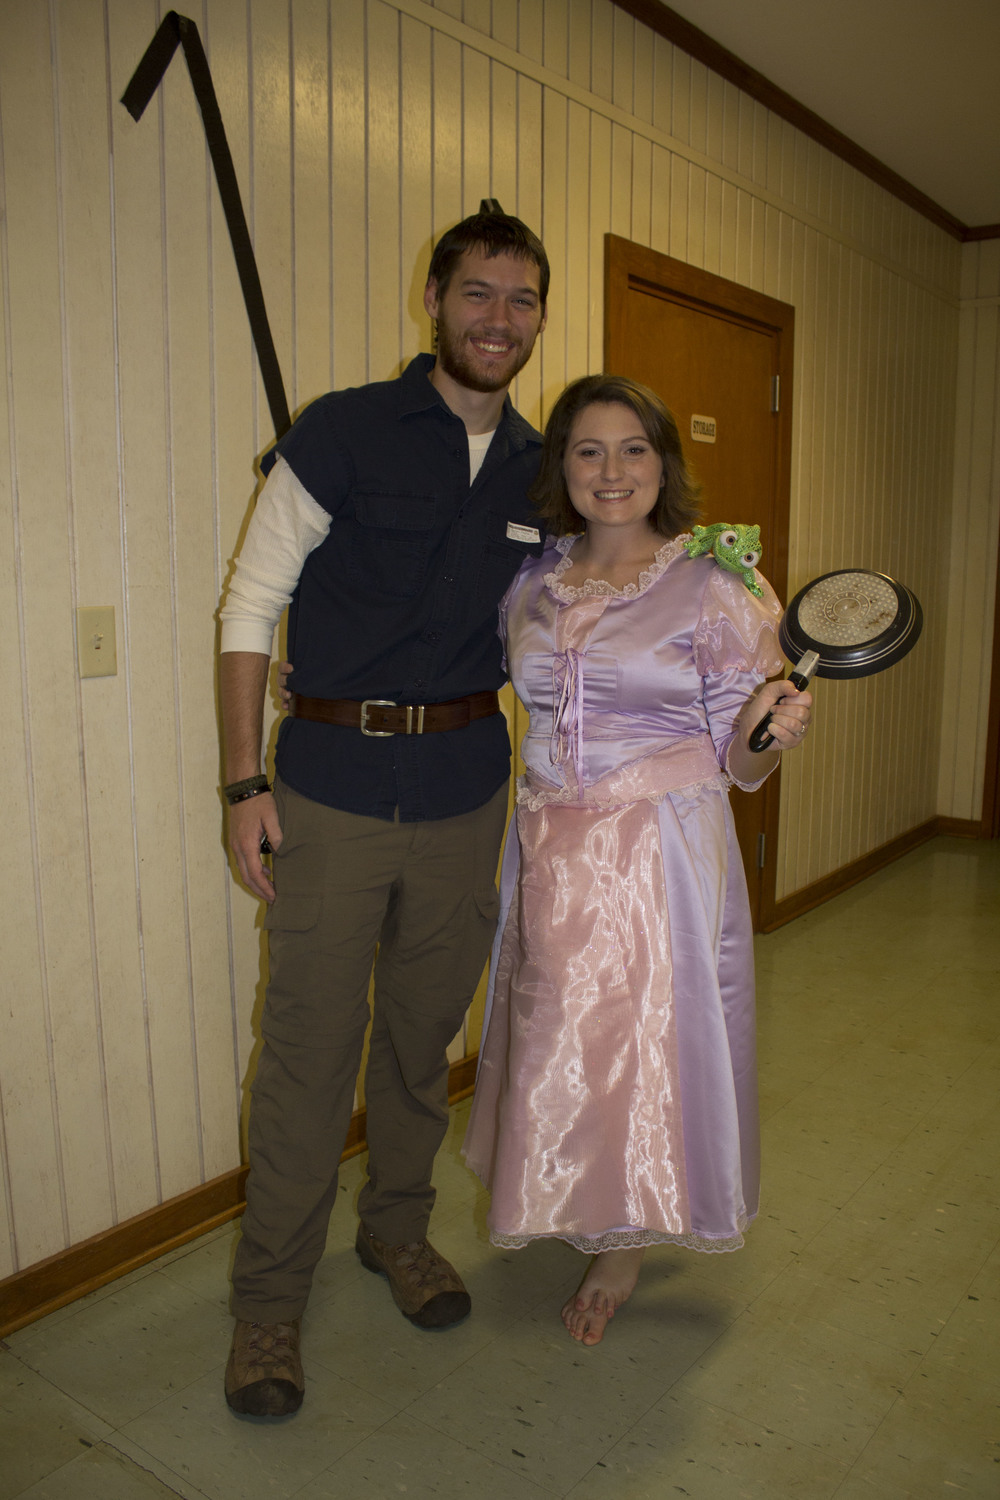 Senior Taci Bolin and guest Hunter Allen pair up to be Flynn Rider and Rapunzel from Tangled.